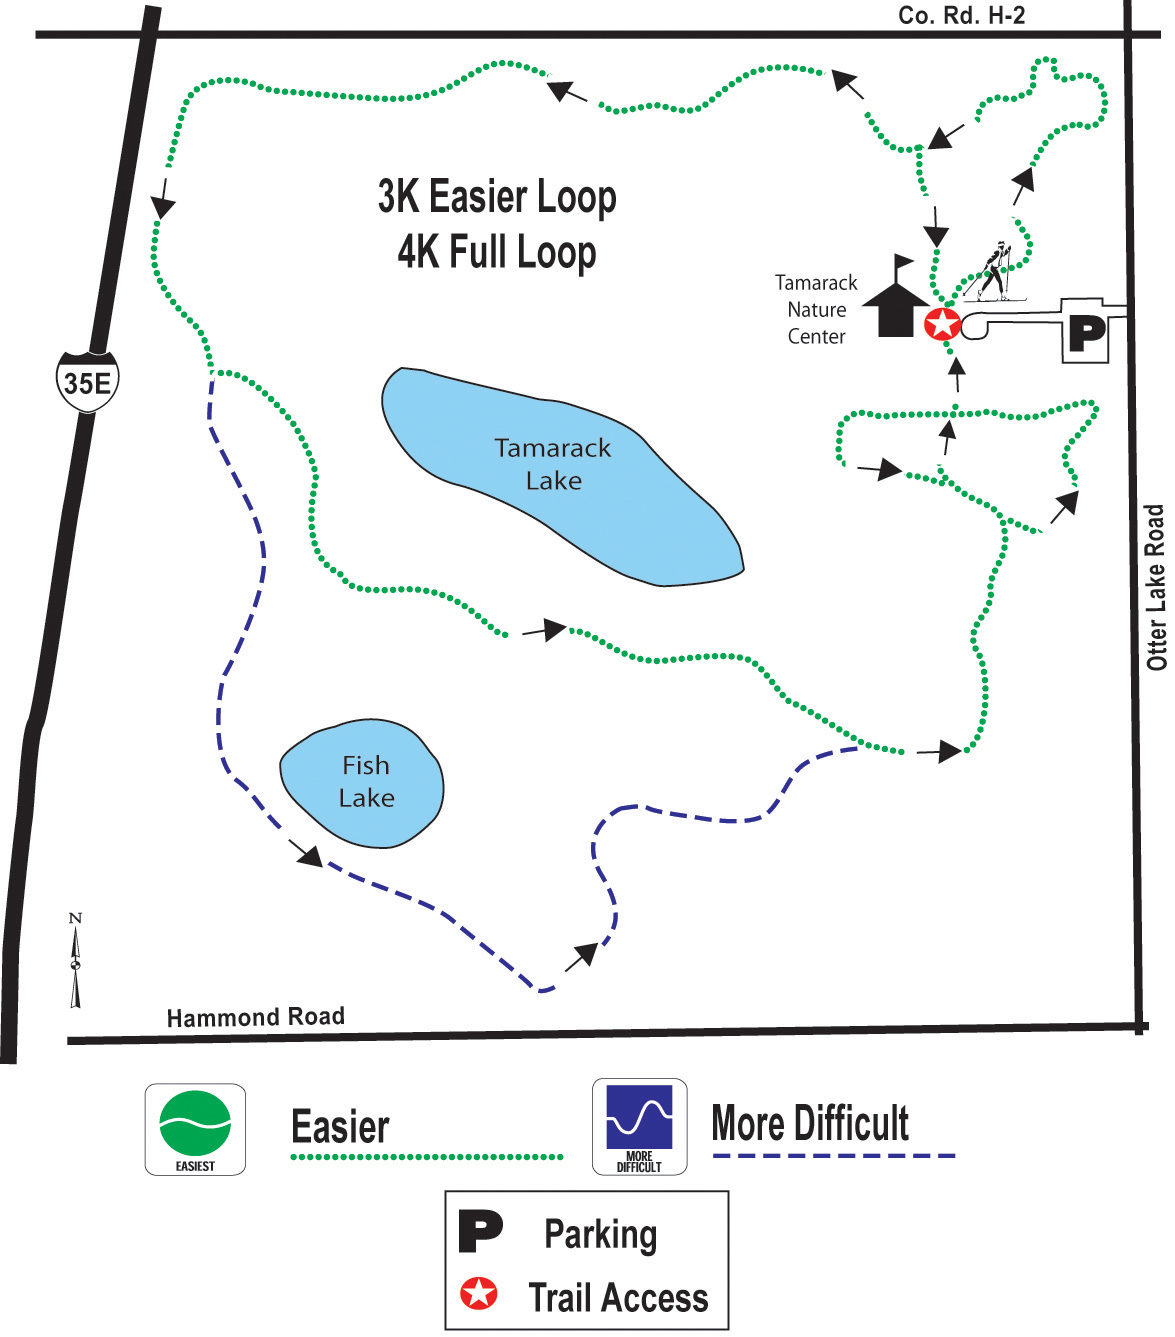 Tamarack Nature Center ski trail map